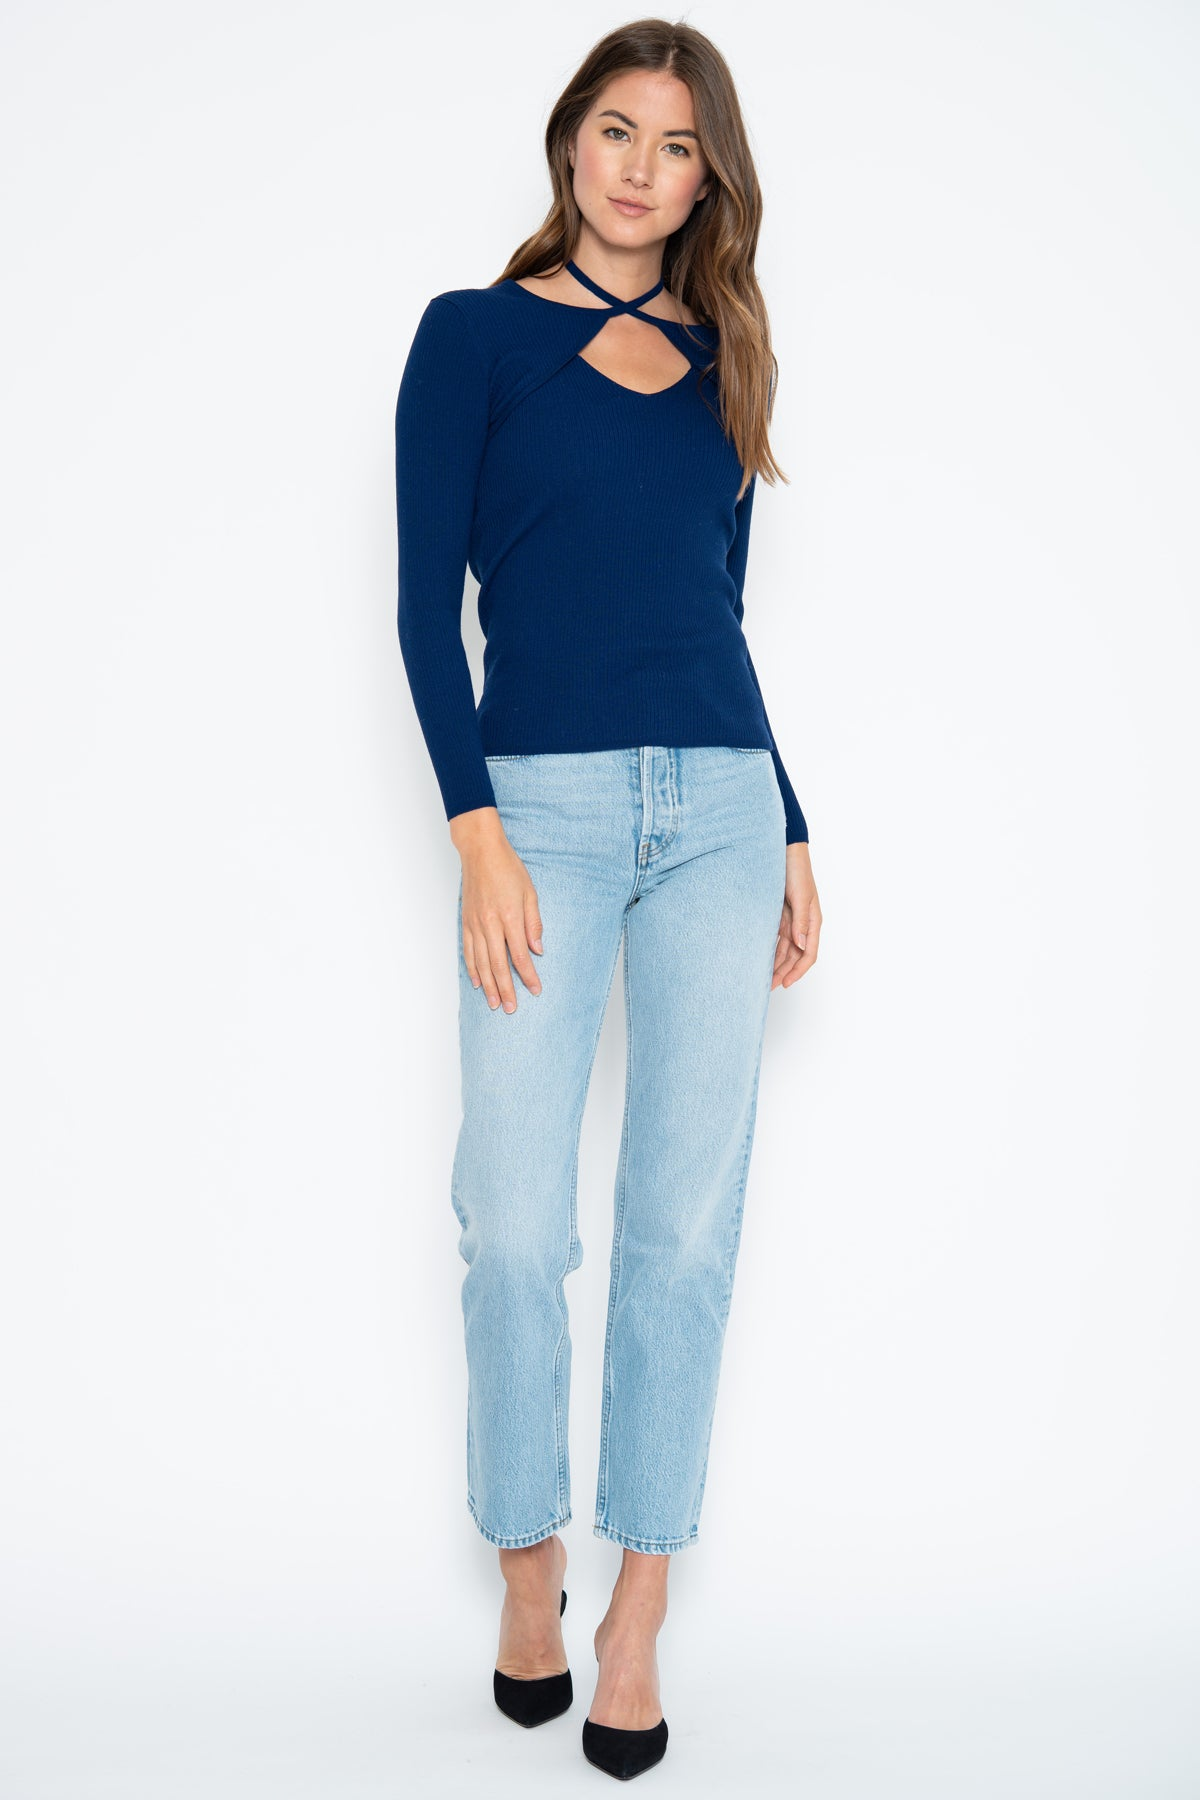 Ellie Tie Top - Dark Denim